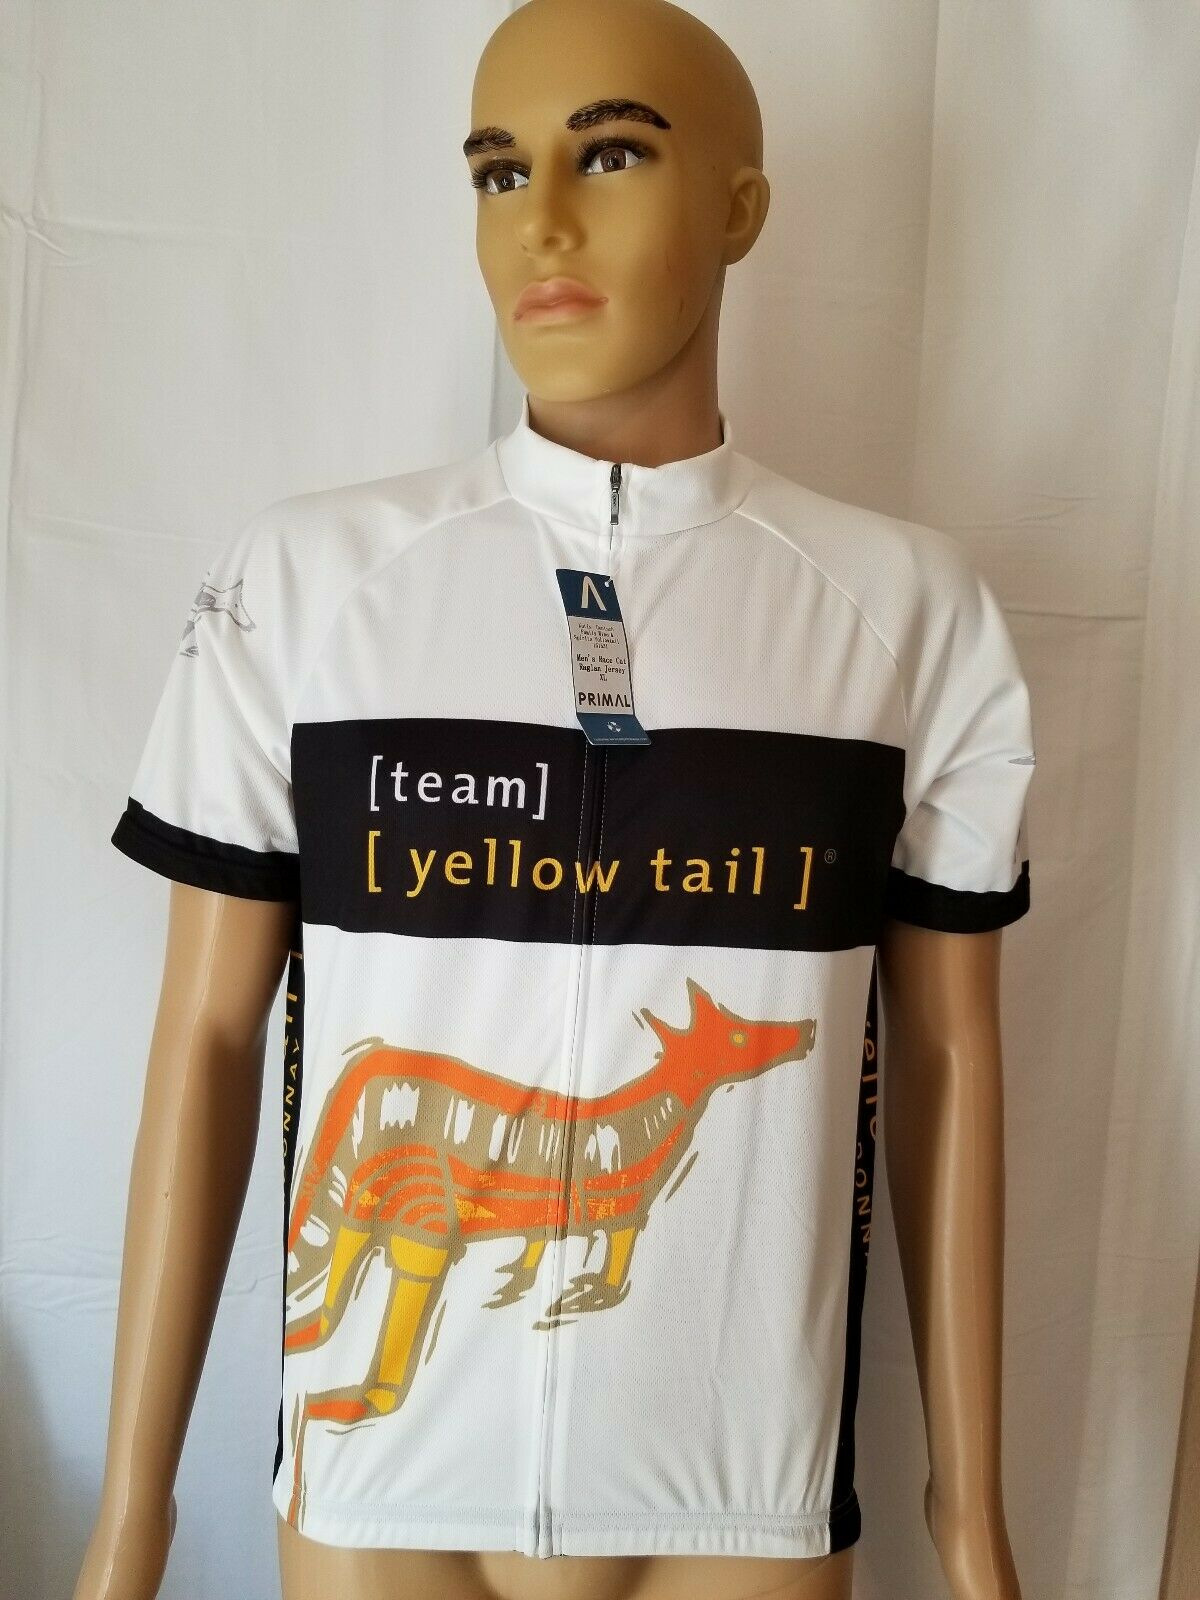 Rare Primal  Mens Race Cut Raglan Team Yellow Tail Wine Cycling Jersey White XL  hottest new styles